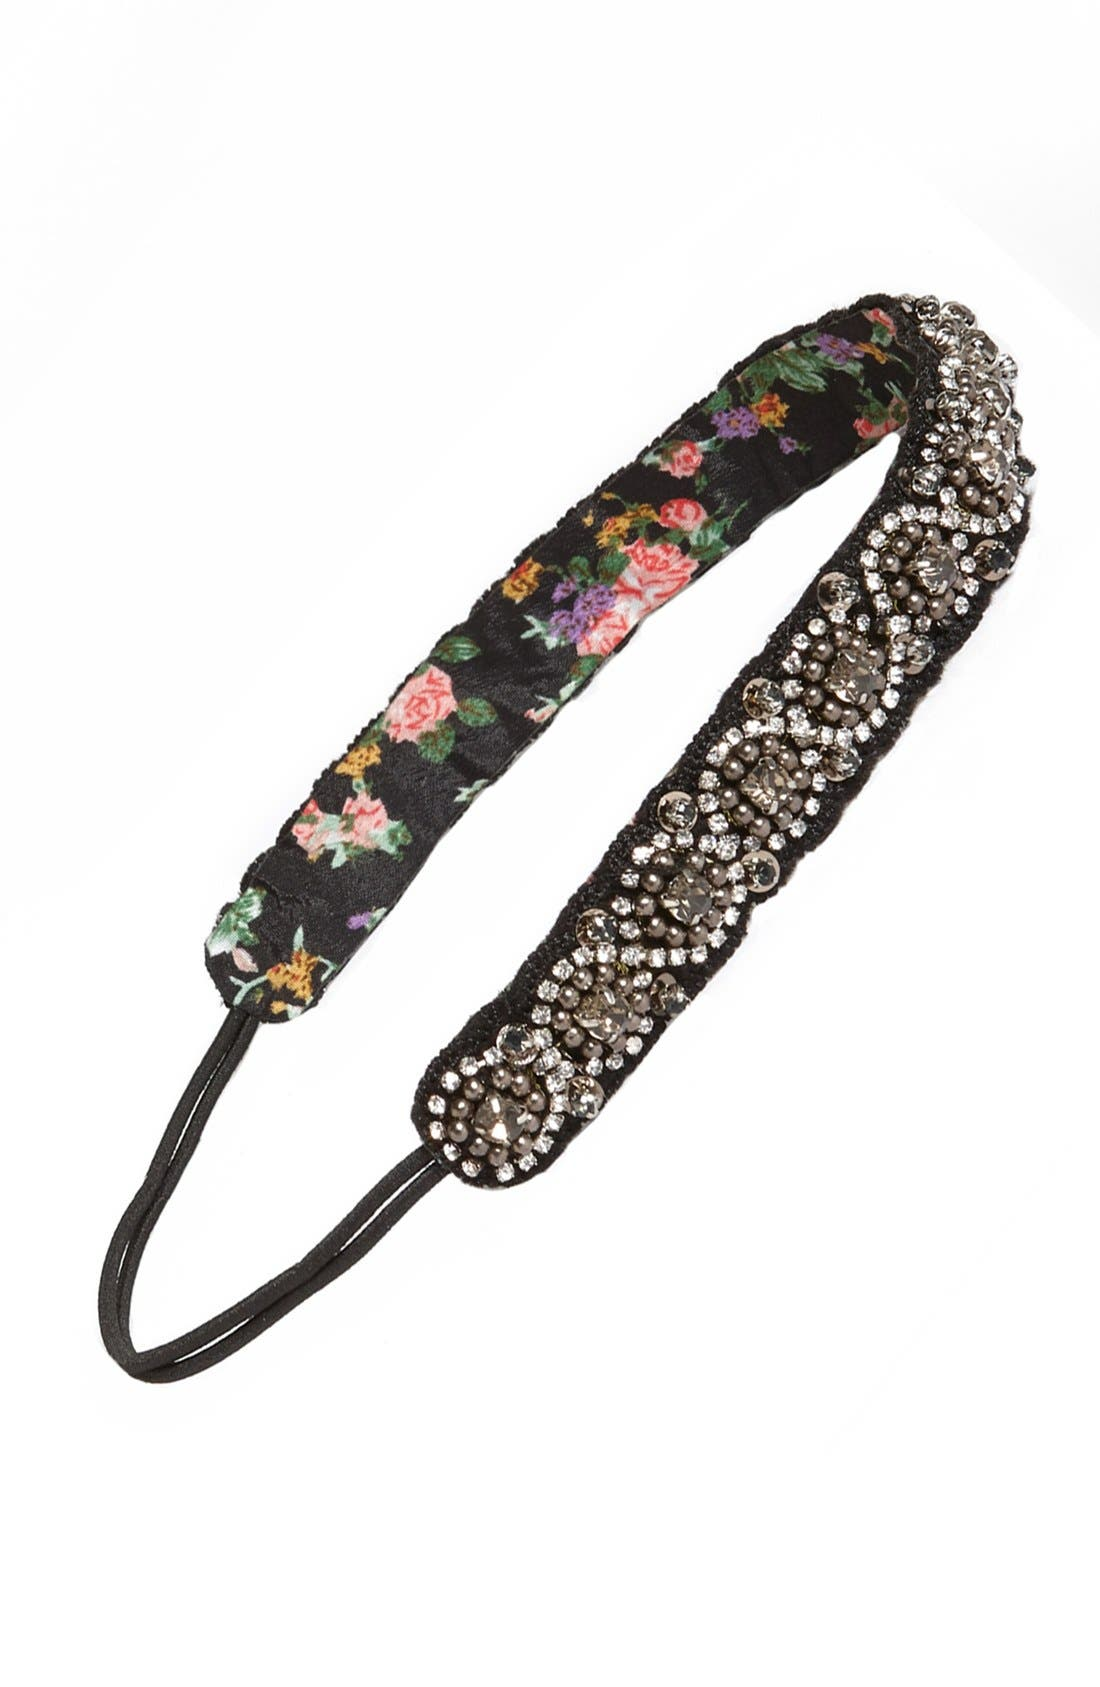 Main Image - Capelli of New York Beaded Head Wrap (Girls)